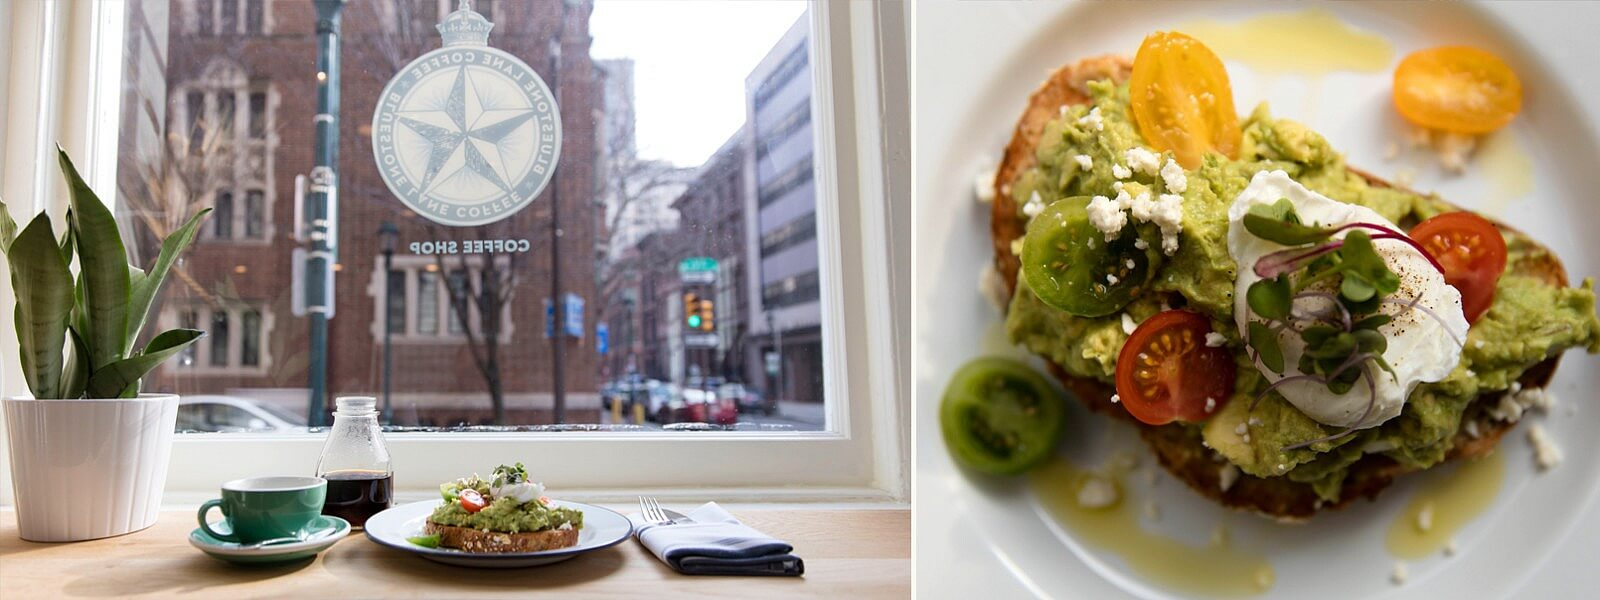 Avocado Smash inside the Rittenhouse location